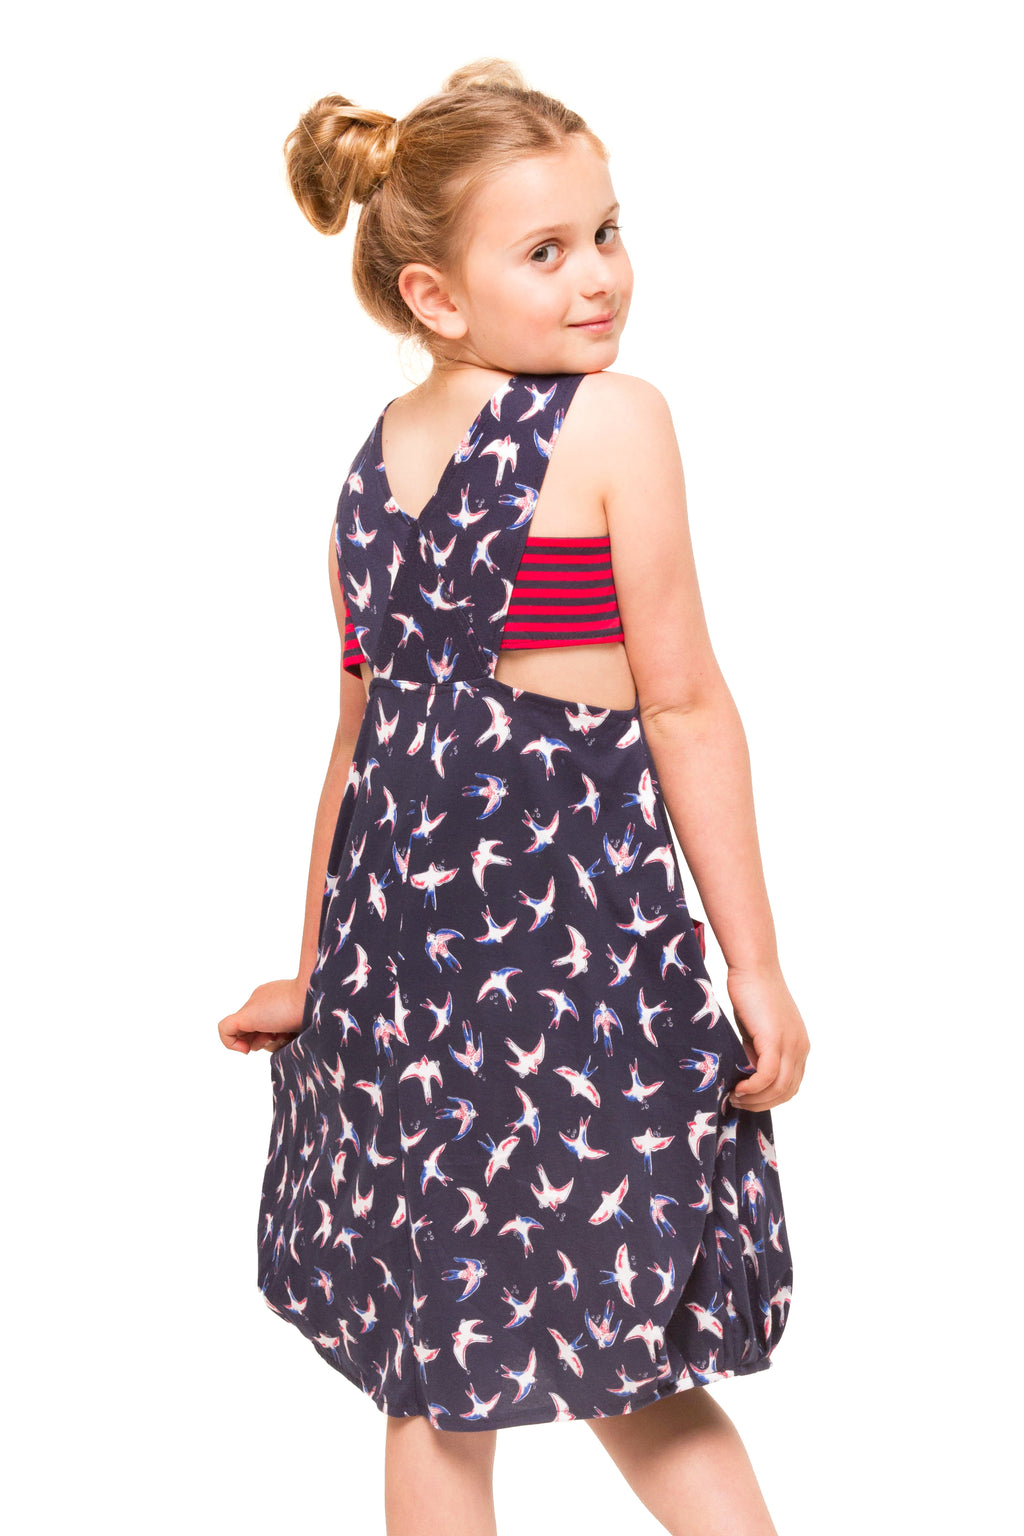 Dixie Navy Dress